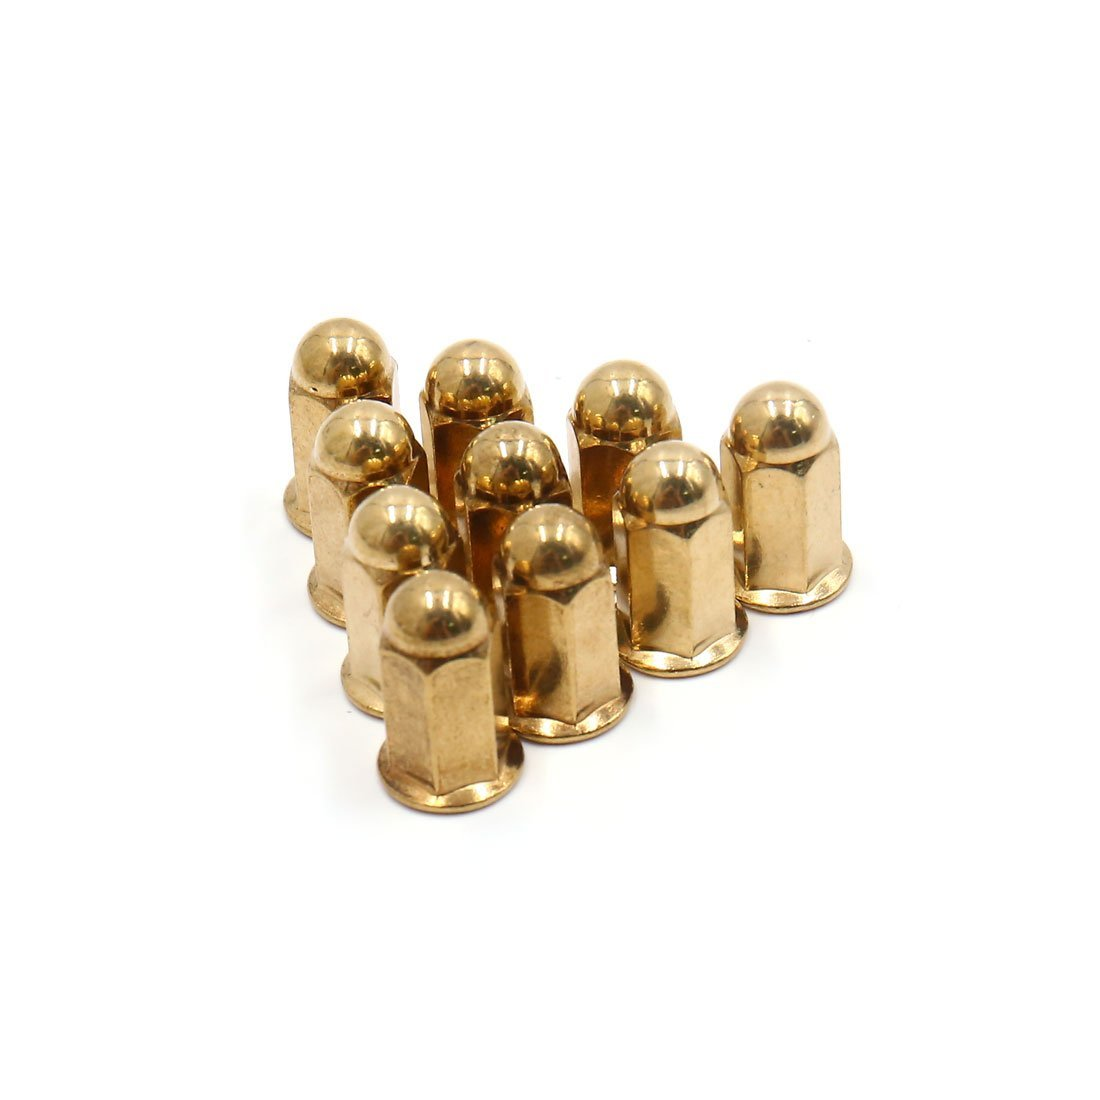 uxcell 10Pcs M6 Gold Tone Metal Exhaust Pipe Screw Bolt Nut Cap Cover for Motorcycle